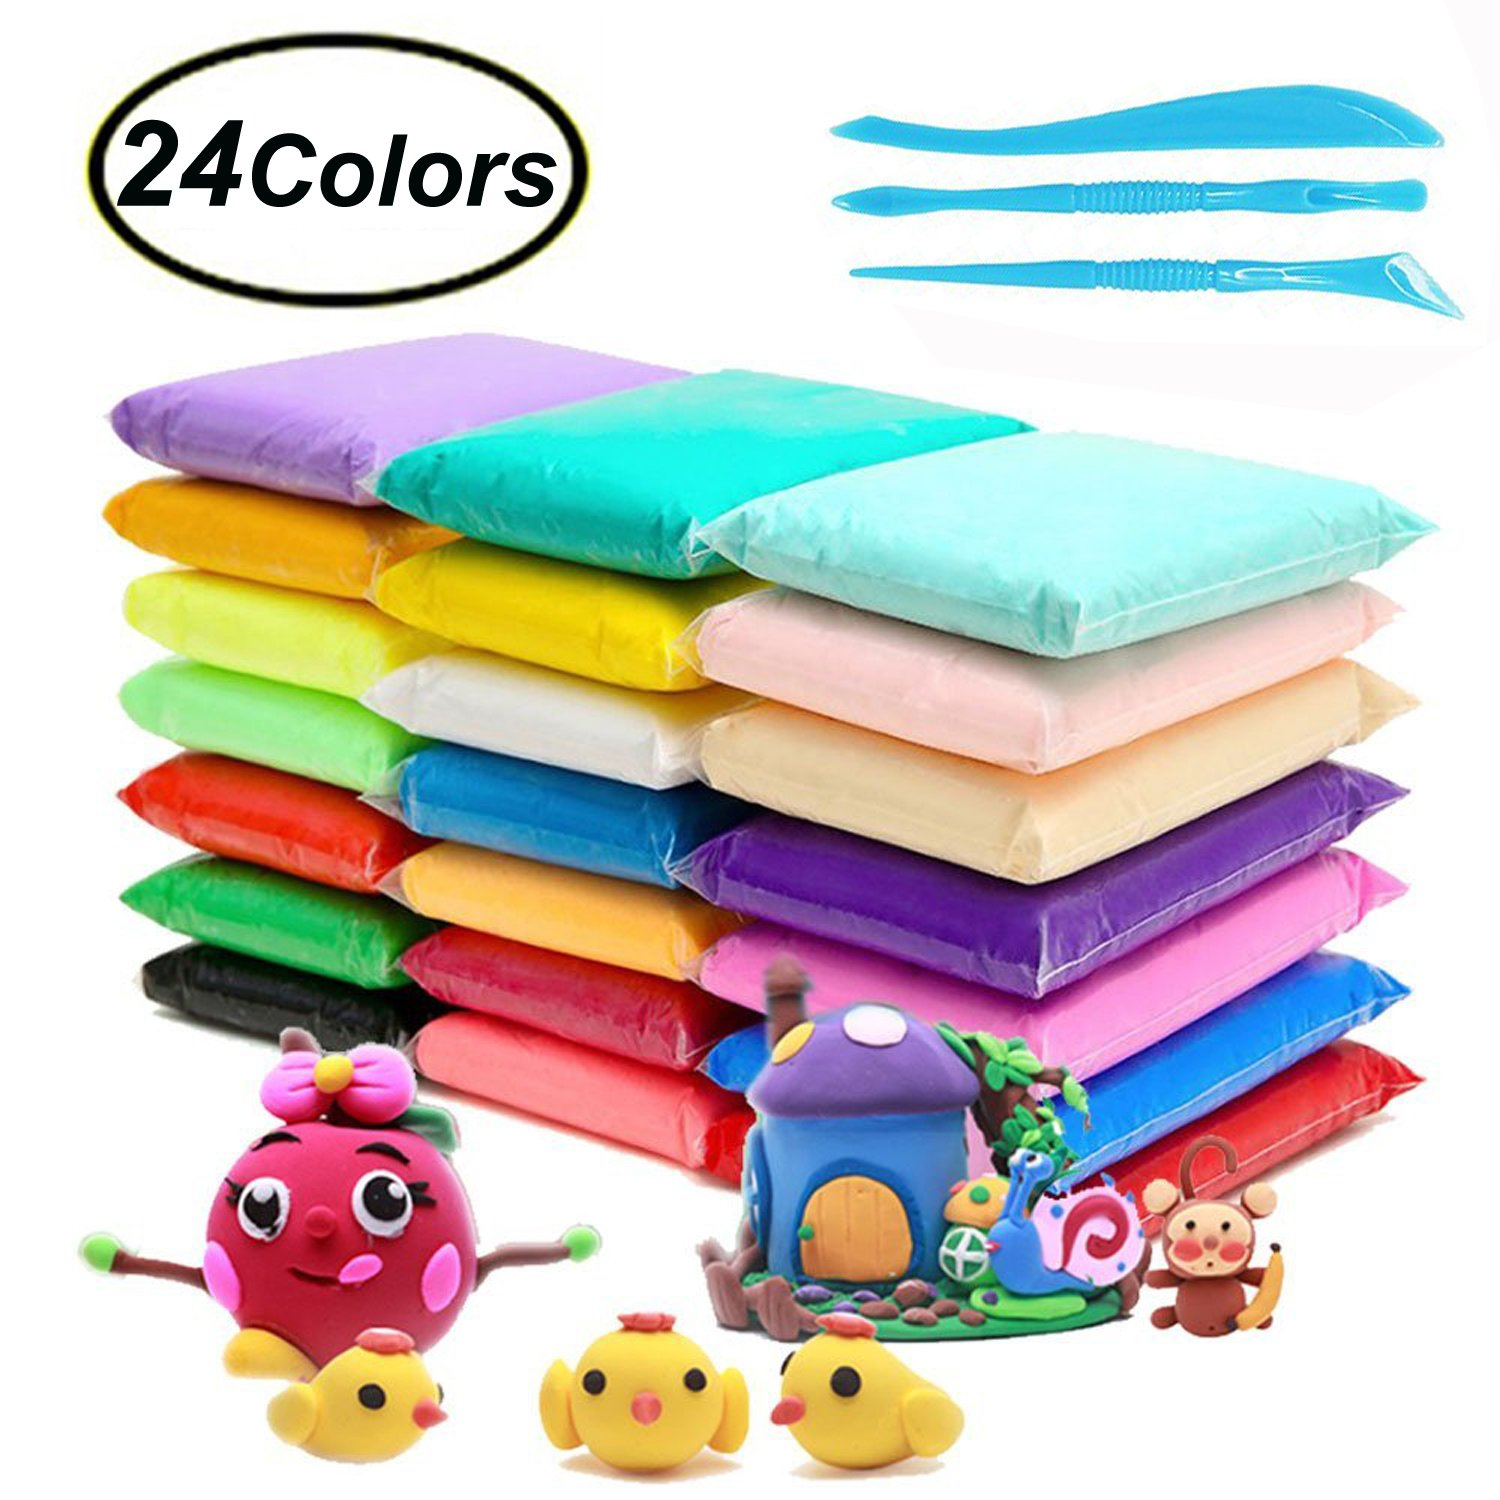 Fluffy Slime Kit, Swallowzy 24 Colors Air Dry Clay Ultra Light Modeling Polymer Clay Set Soft Modeling Dough Wonderful DIY Educational Creative Gift for Kids